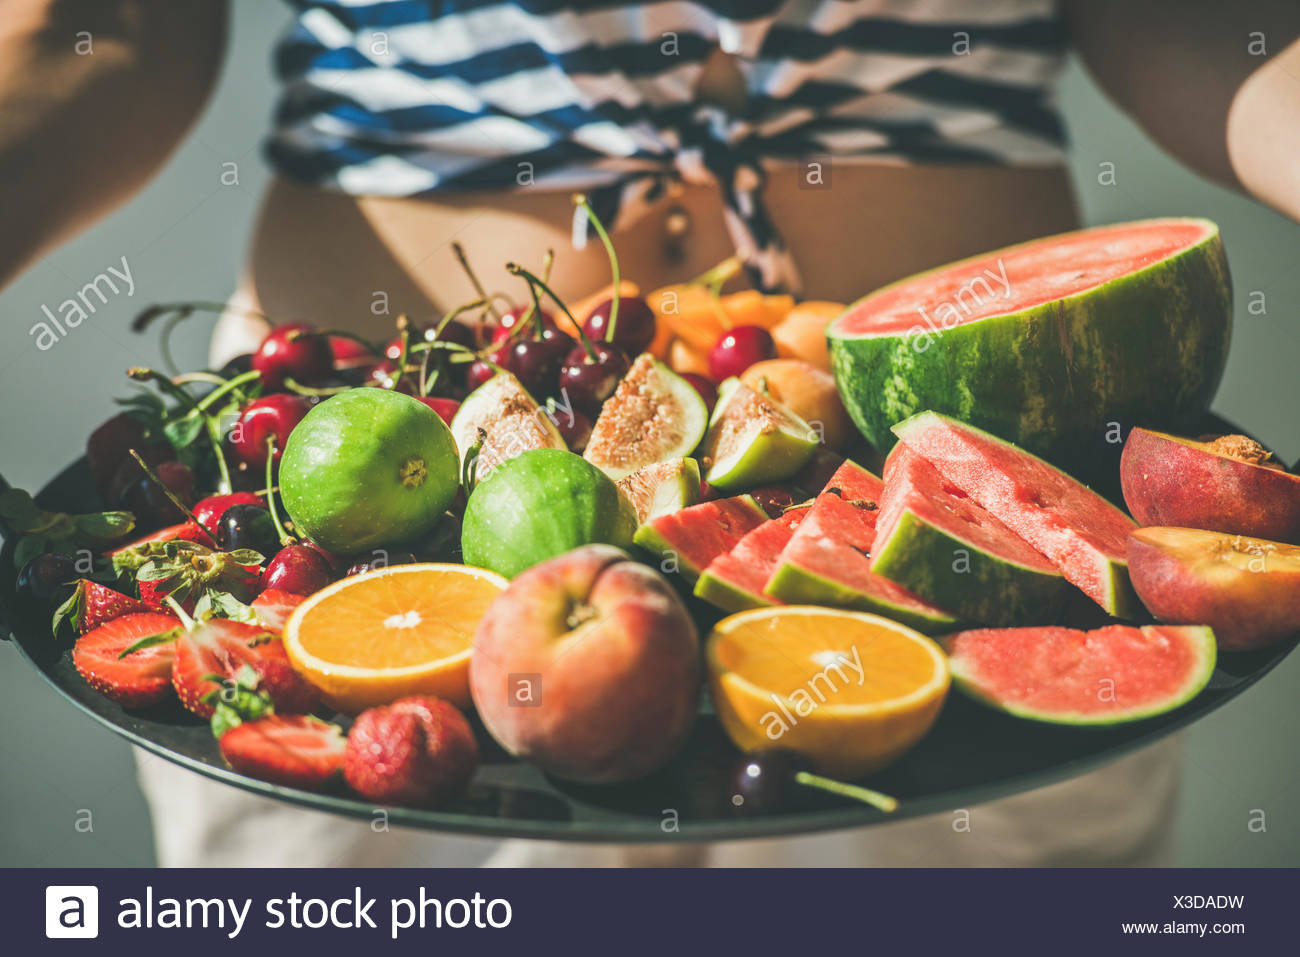 Summer healthy raw vegan clean eating breakfast in bed concept. Young girl wearing striped home shirt holding tray full of fresh seasonal fruit, selec - Stock Image